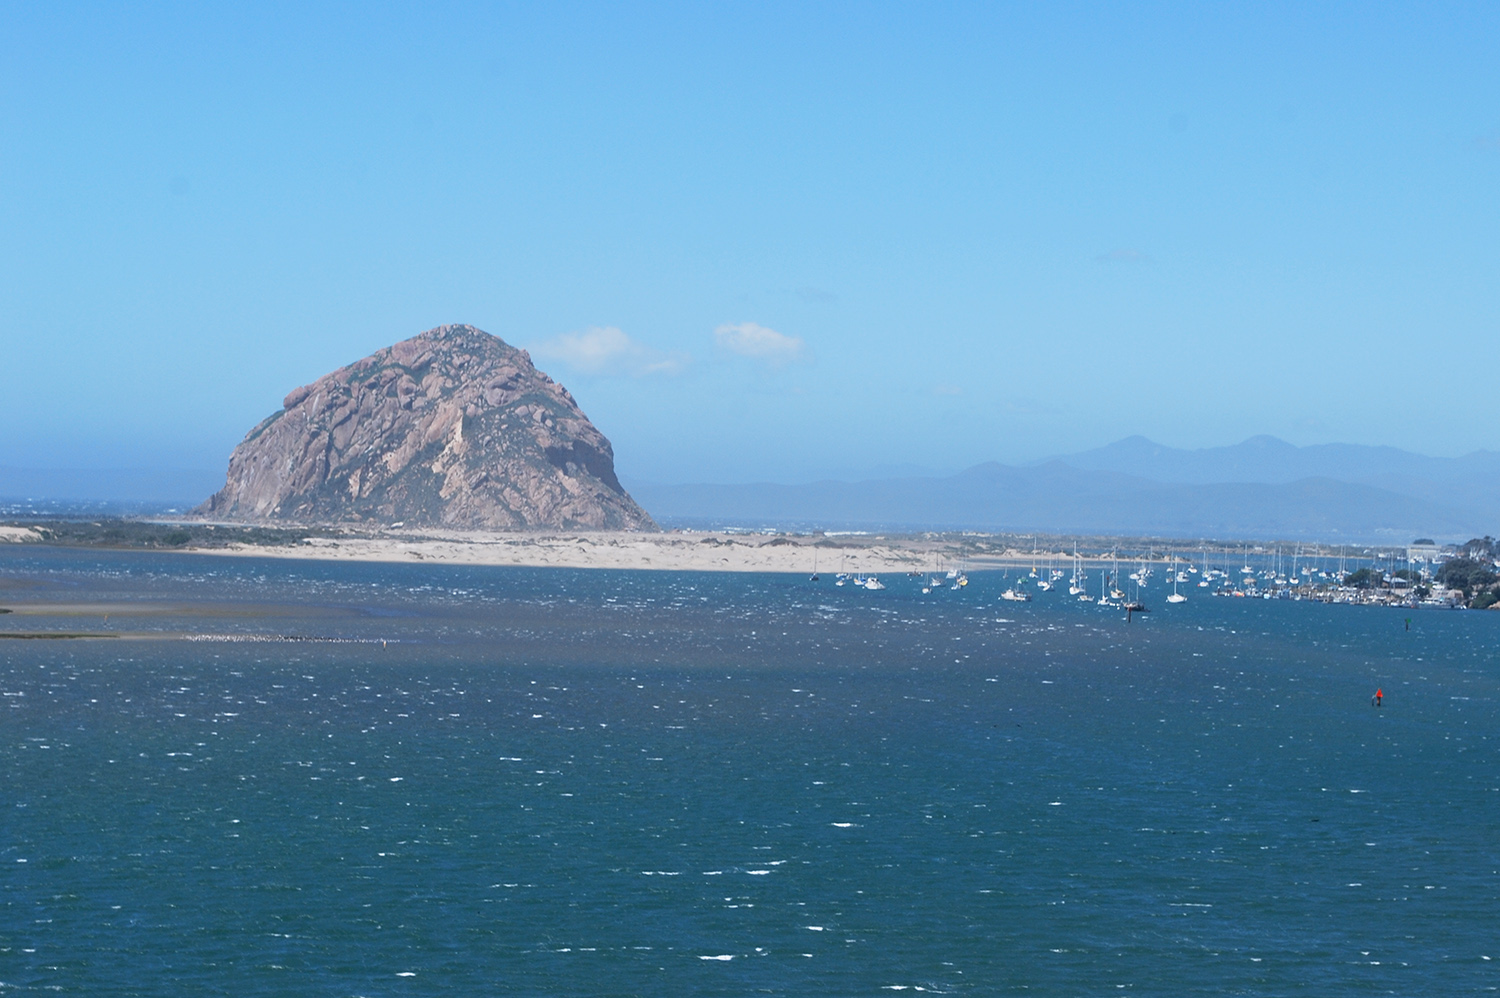 Morro Rock across the bay from Morro Bay State Park